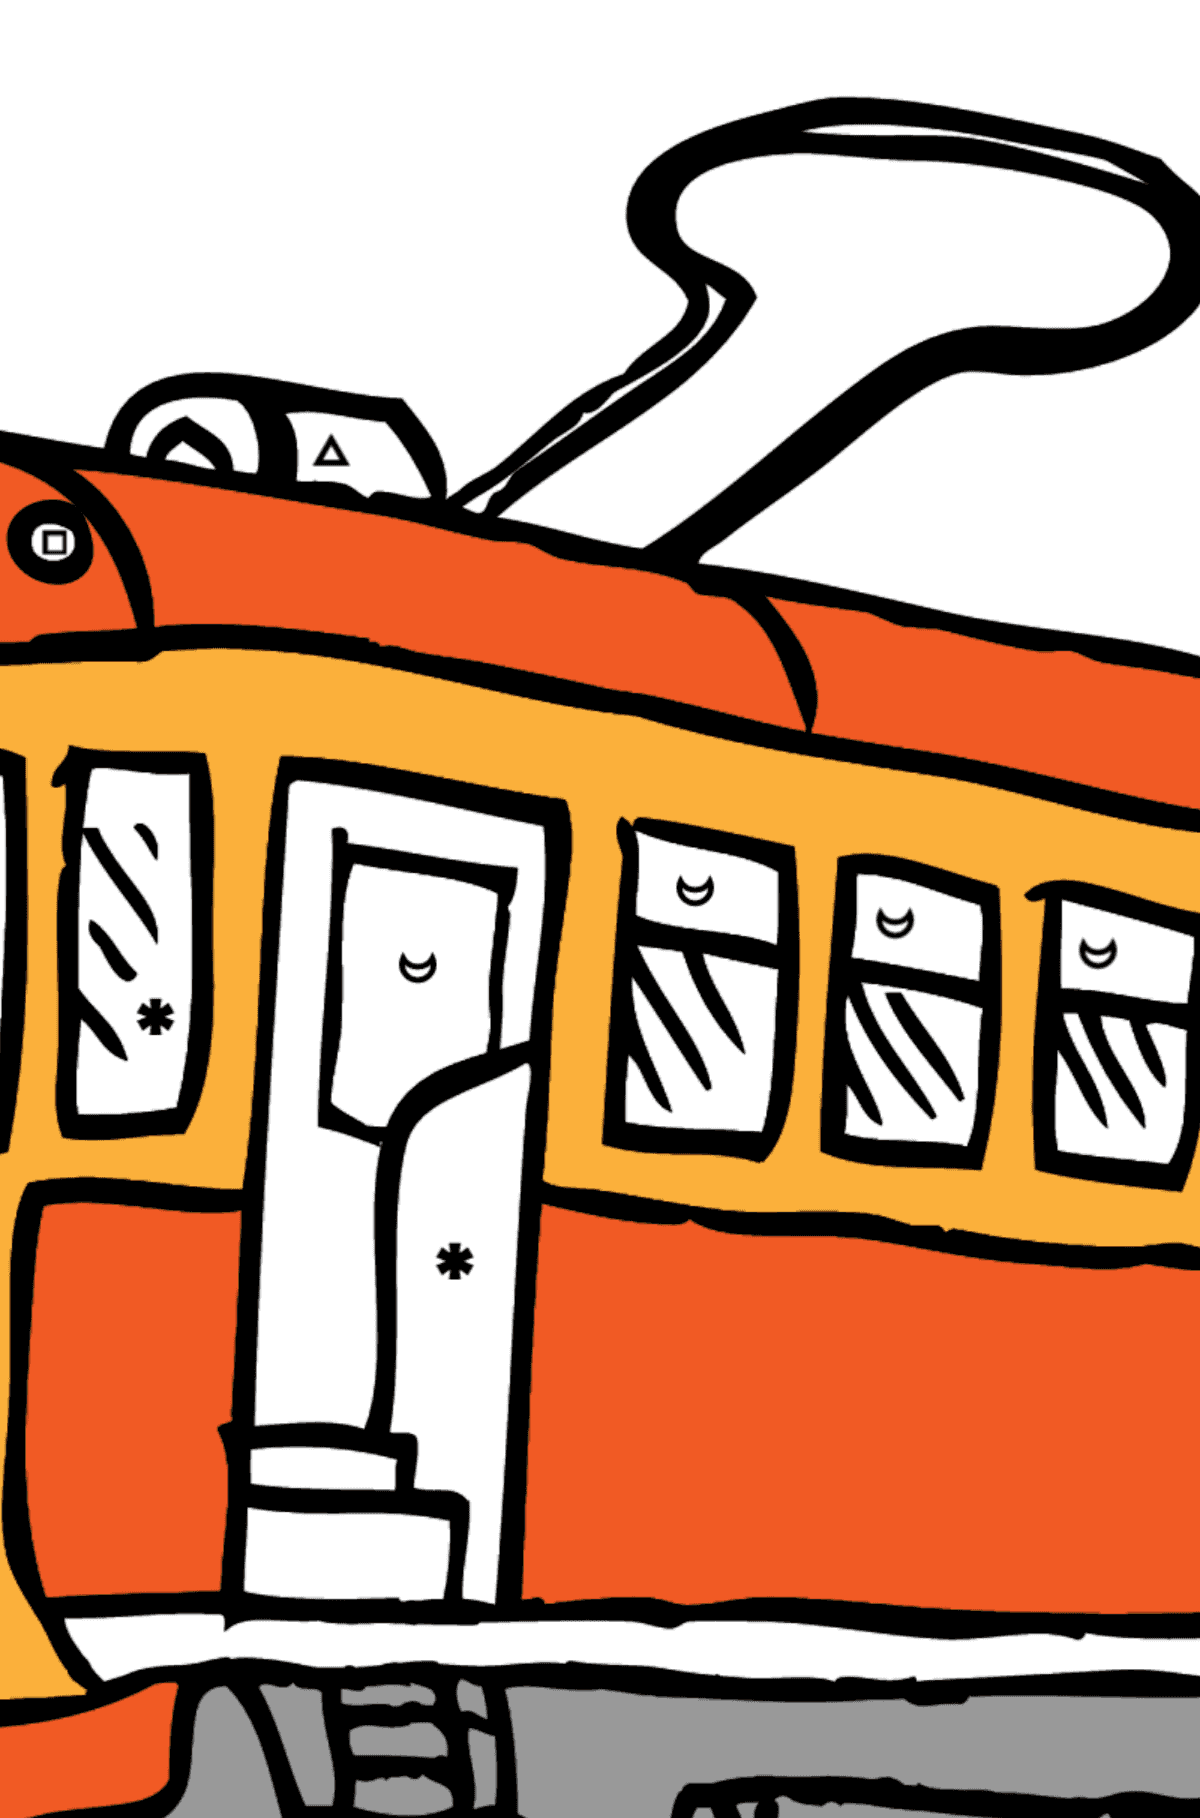 Simple Coloring Page - A Tram is Bored - Coloring by Symbols and Geometric Shapes for Kids